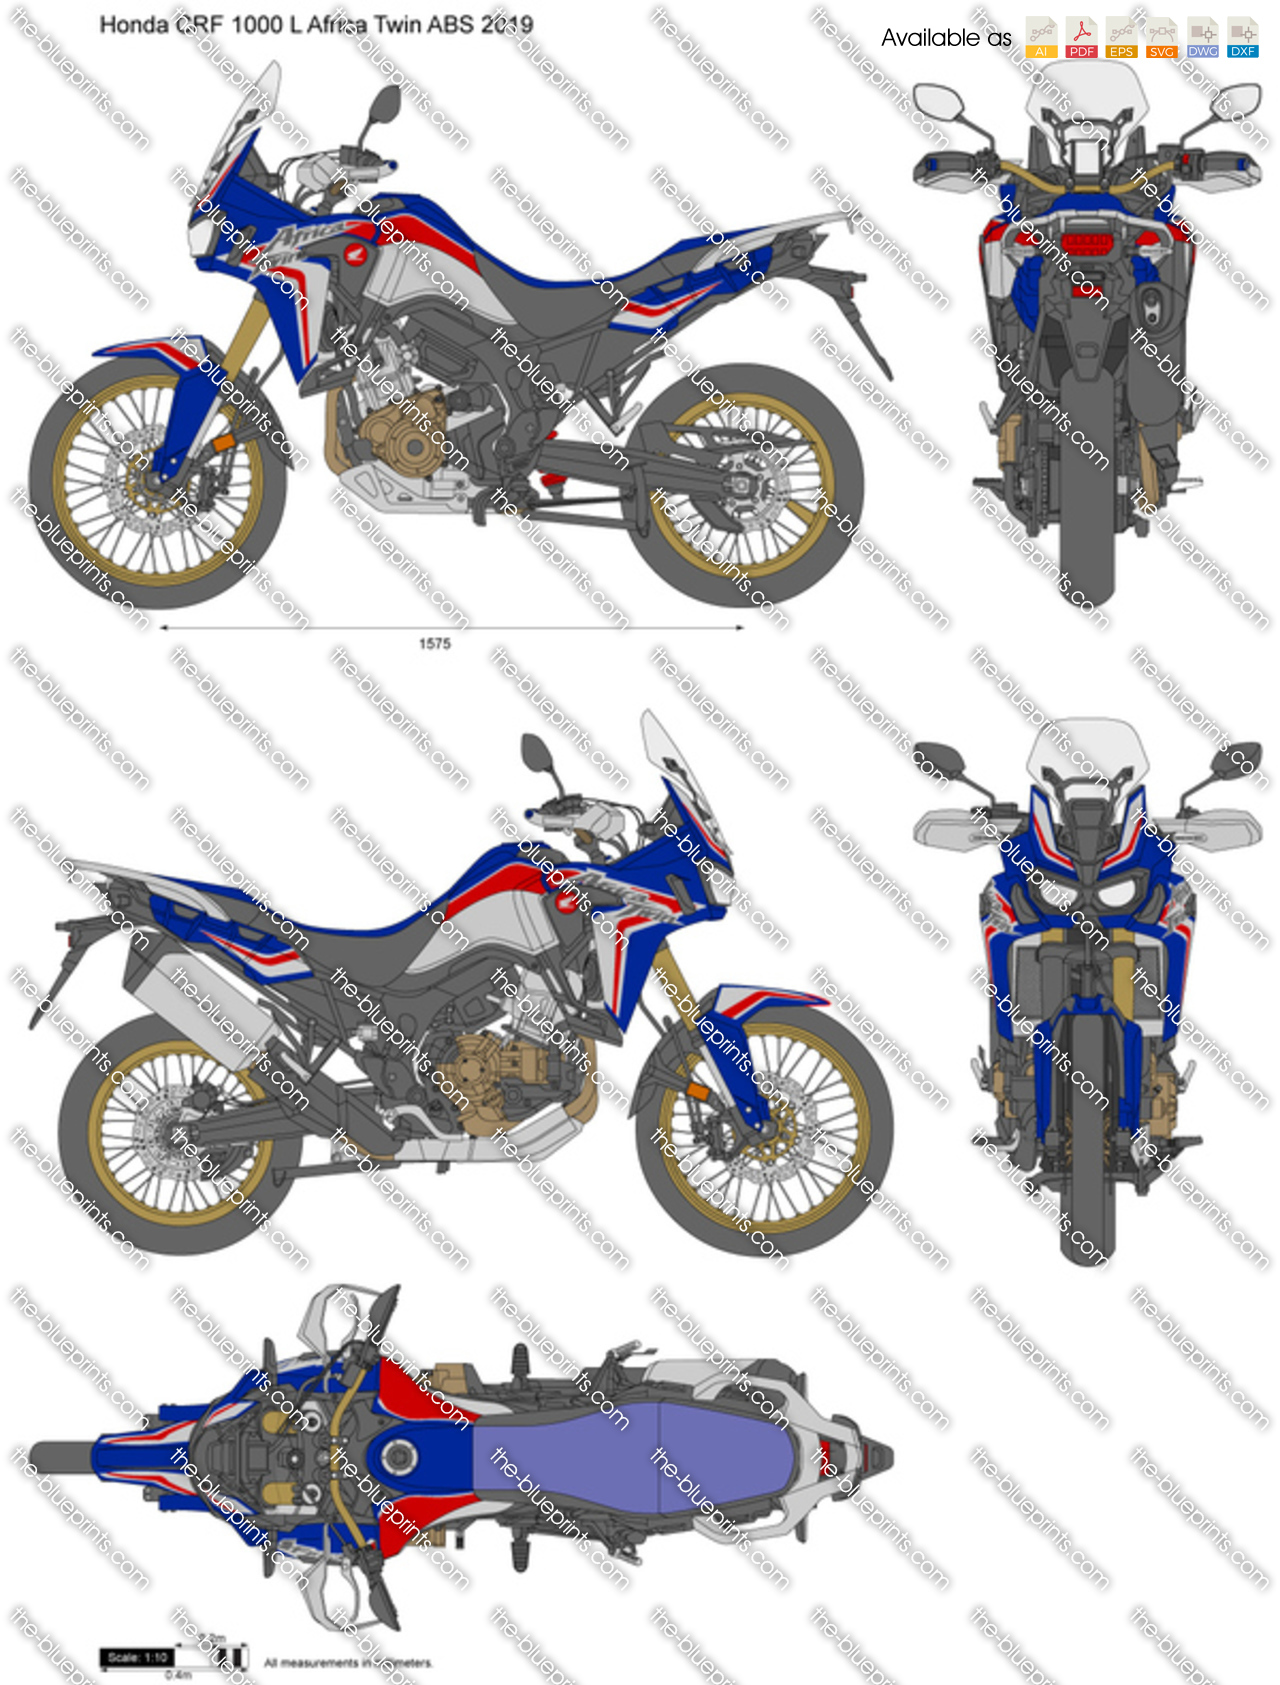 Honda CRF 1000 L Africa Twin ABS